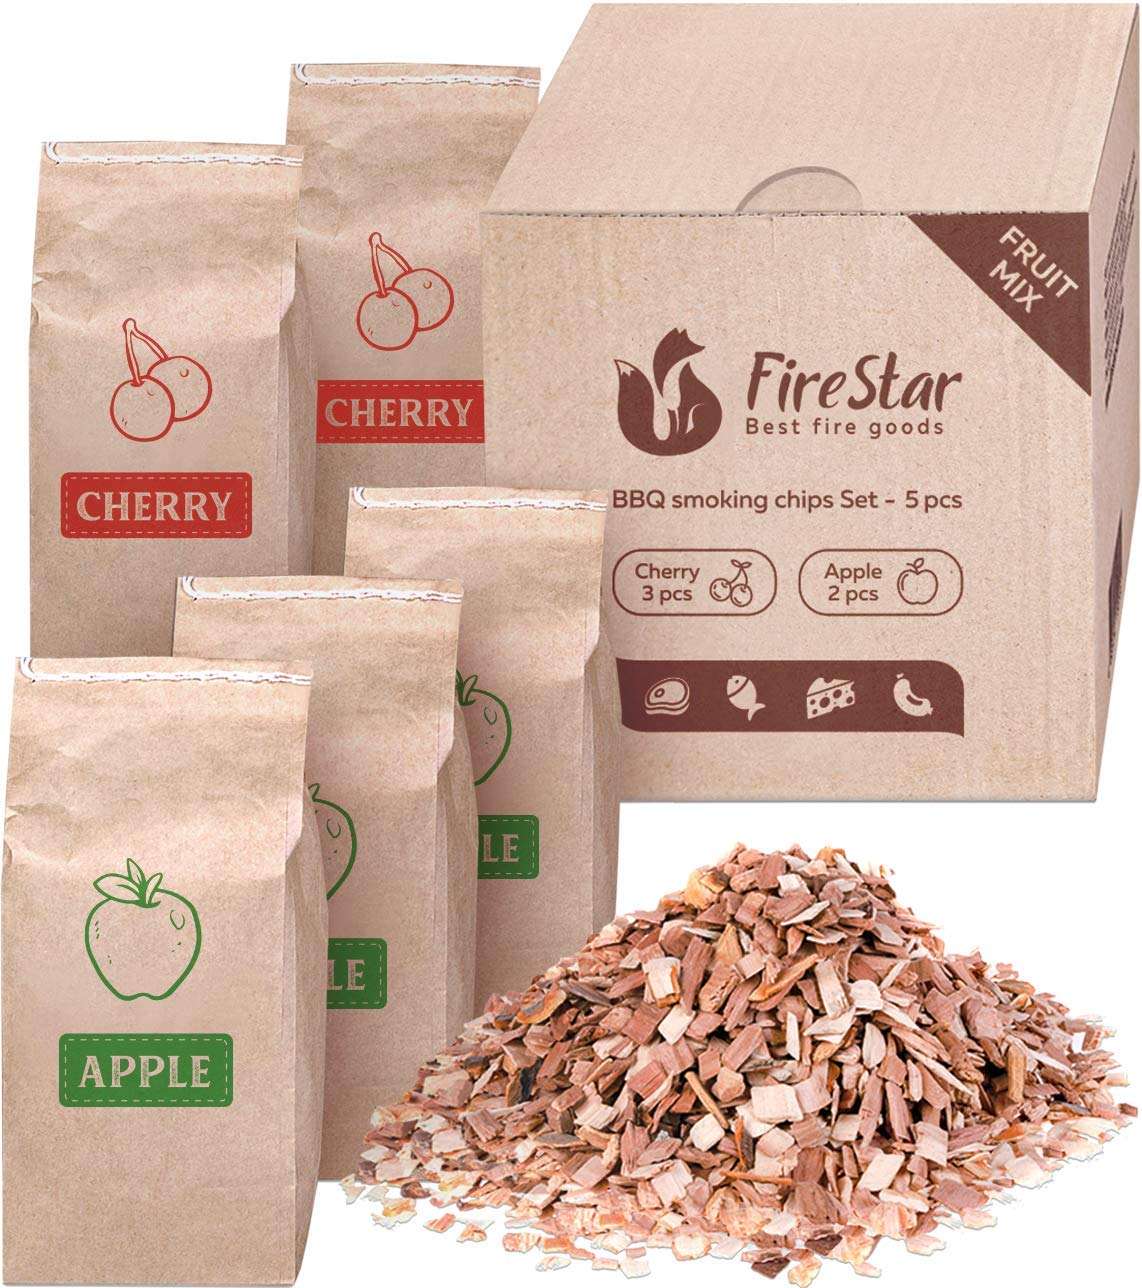 Cherry & Apple wood chips (5pc) -  Wood chips for smoking and grilling (bbq) - Electric smoker wood chips variety pack - Bonus E-book